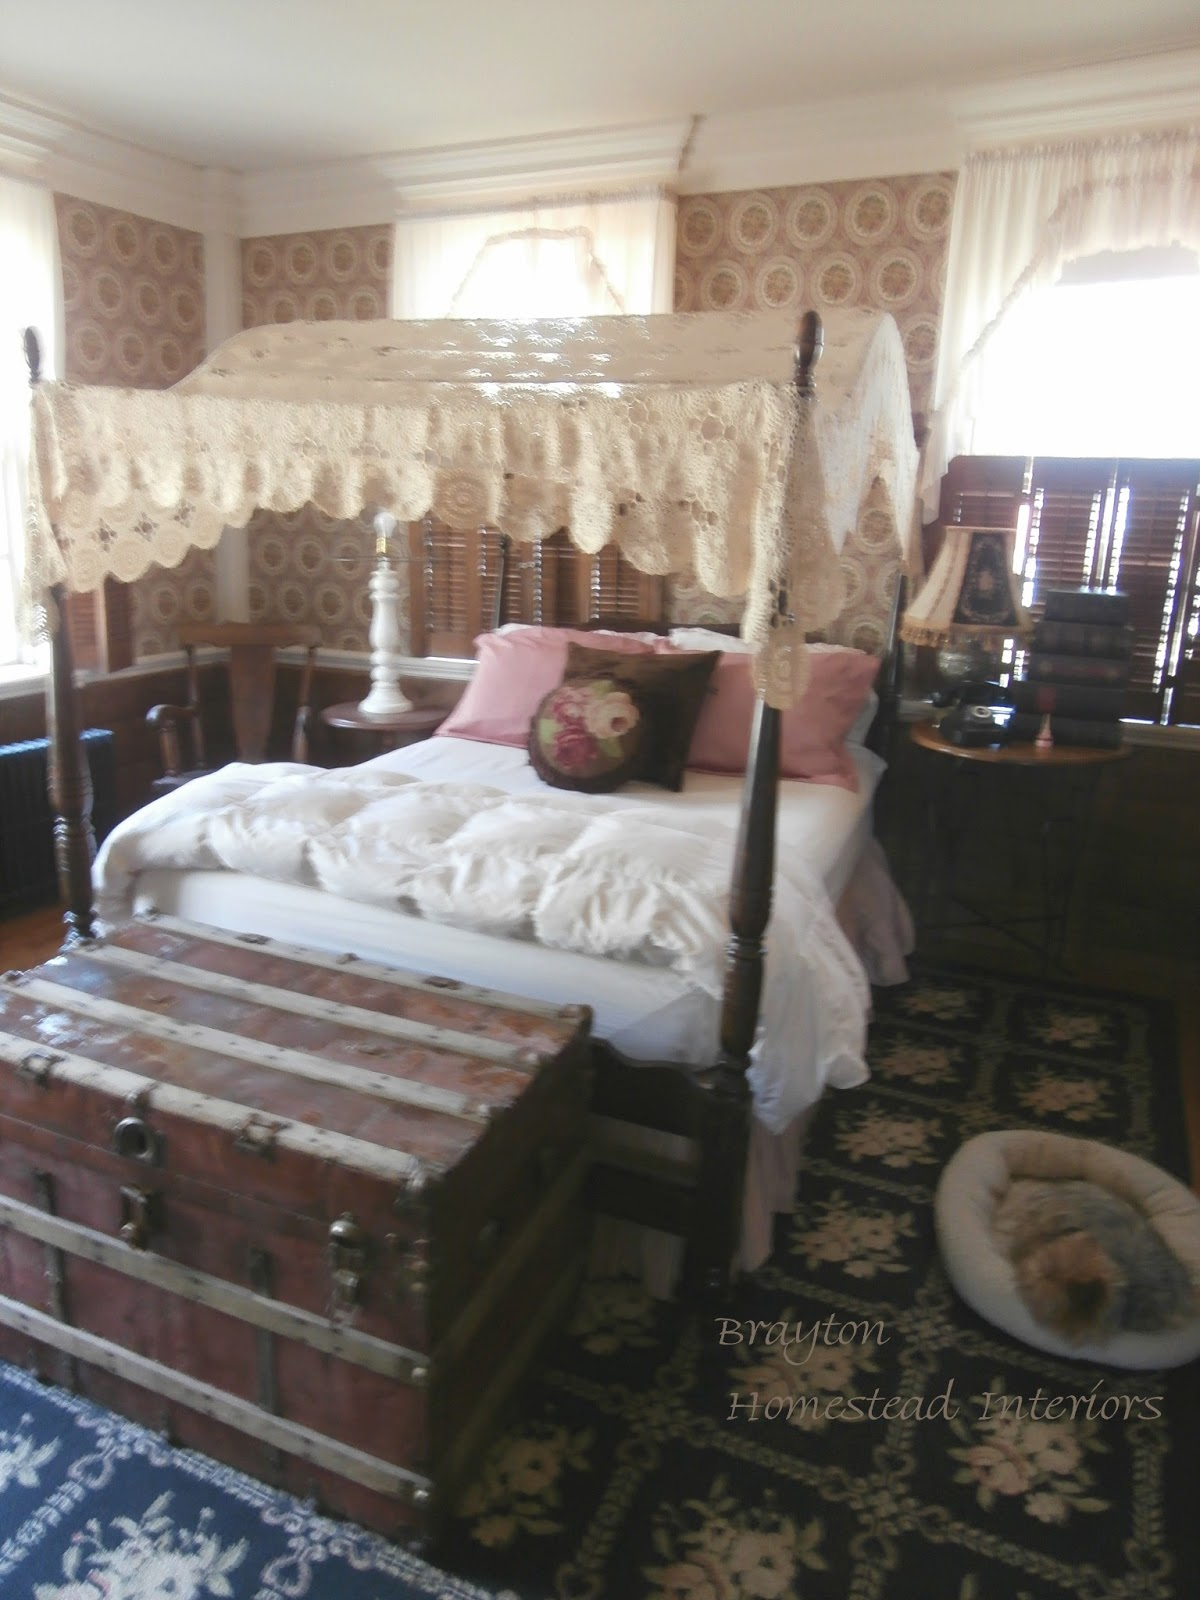 brayton homestead interiors new bedroom furniture